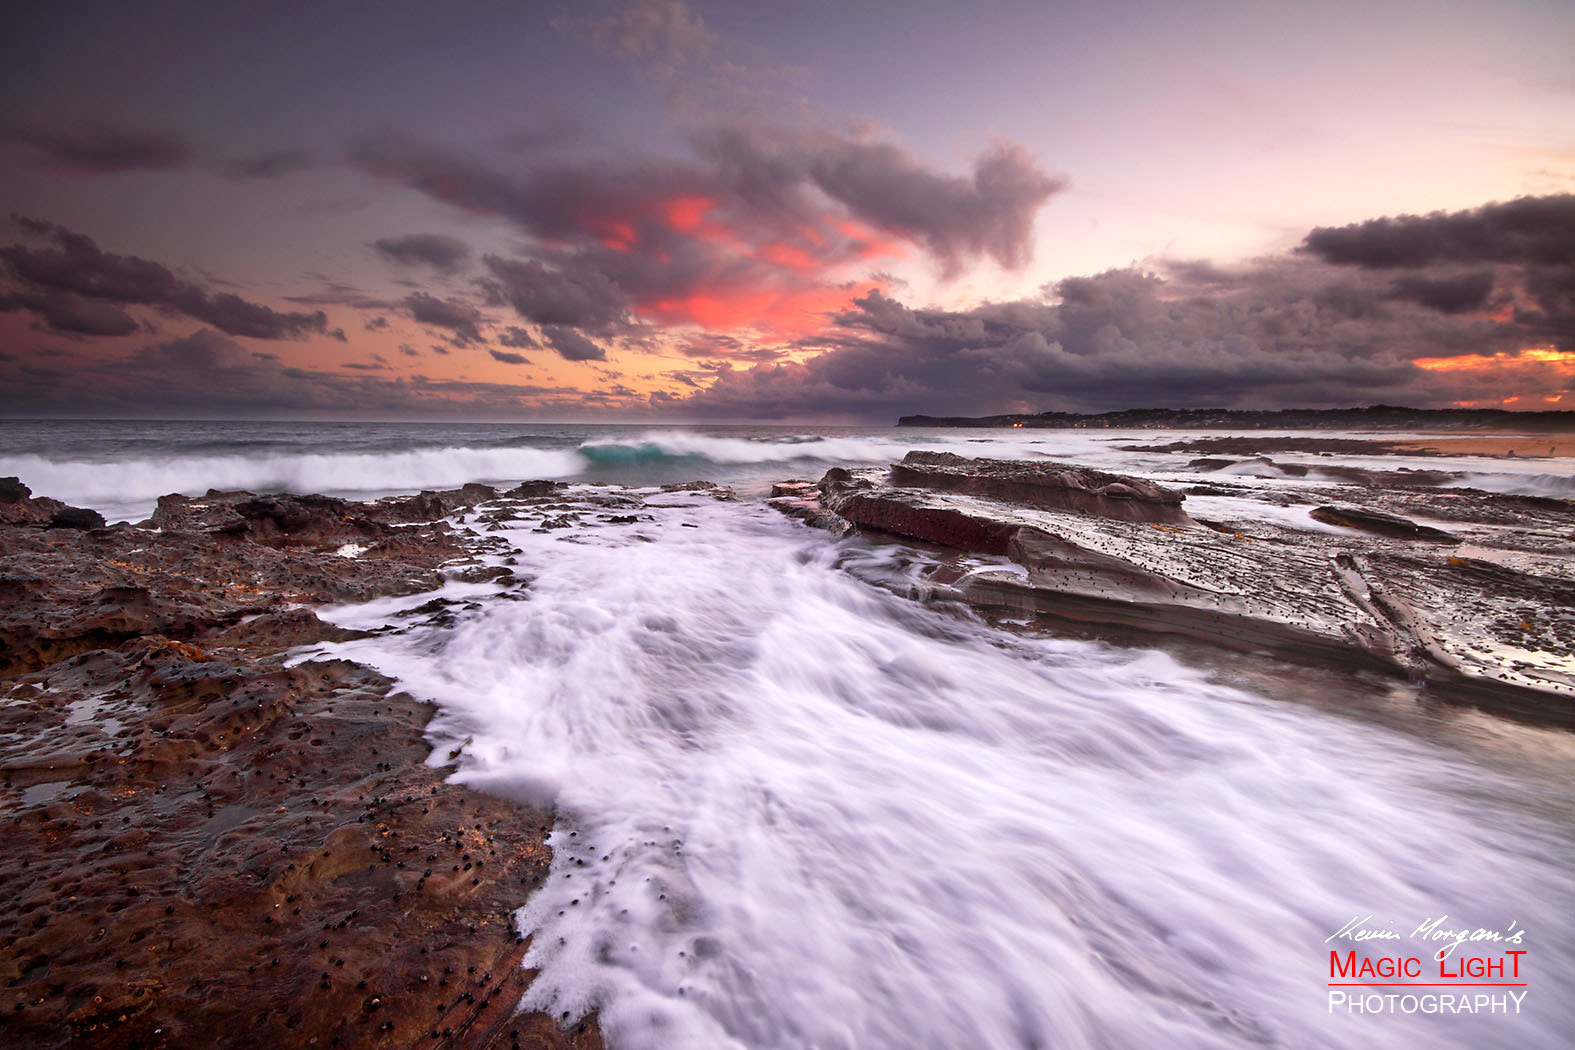 Photograph Spoon Bay Sunset by Kevin Morgan on 500px